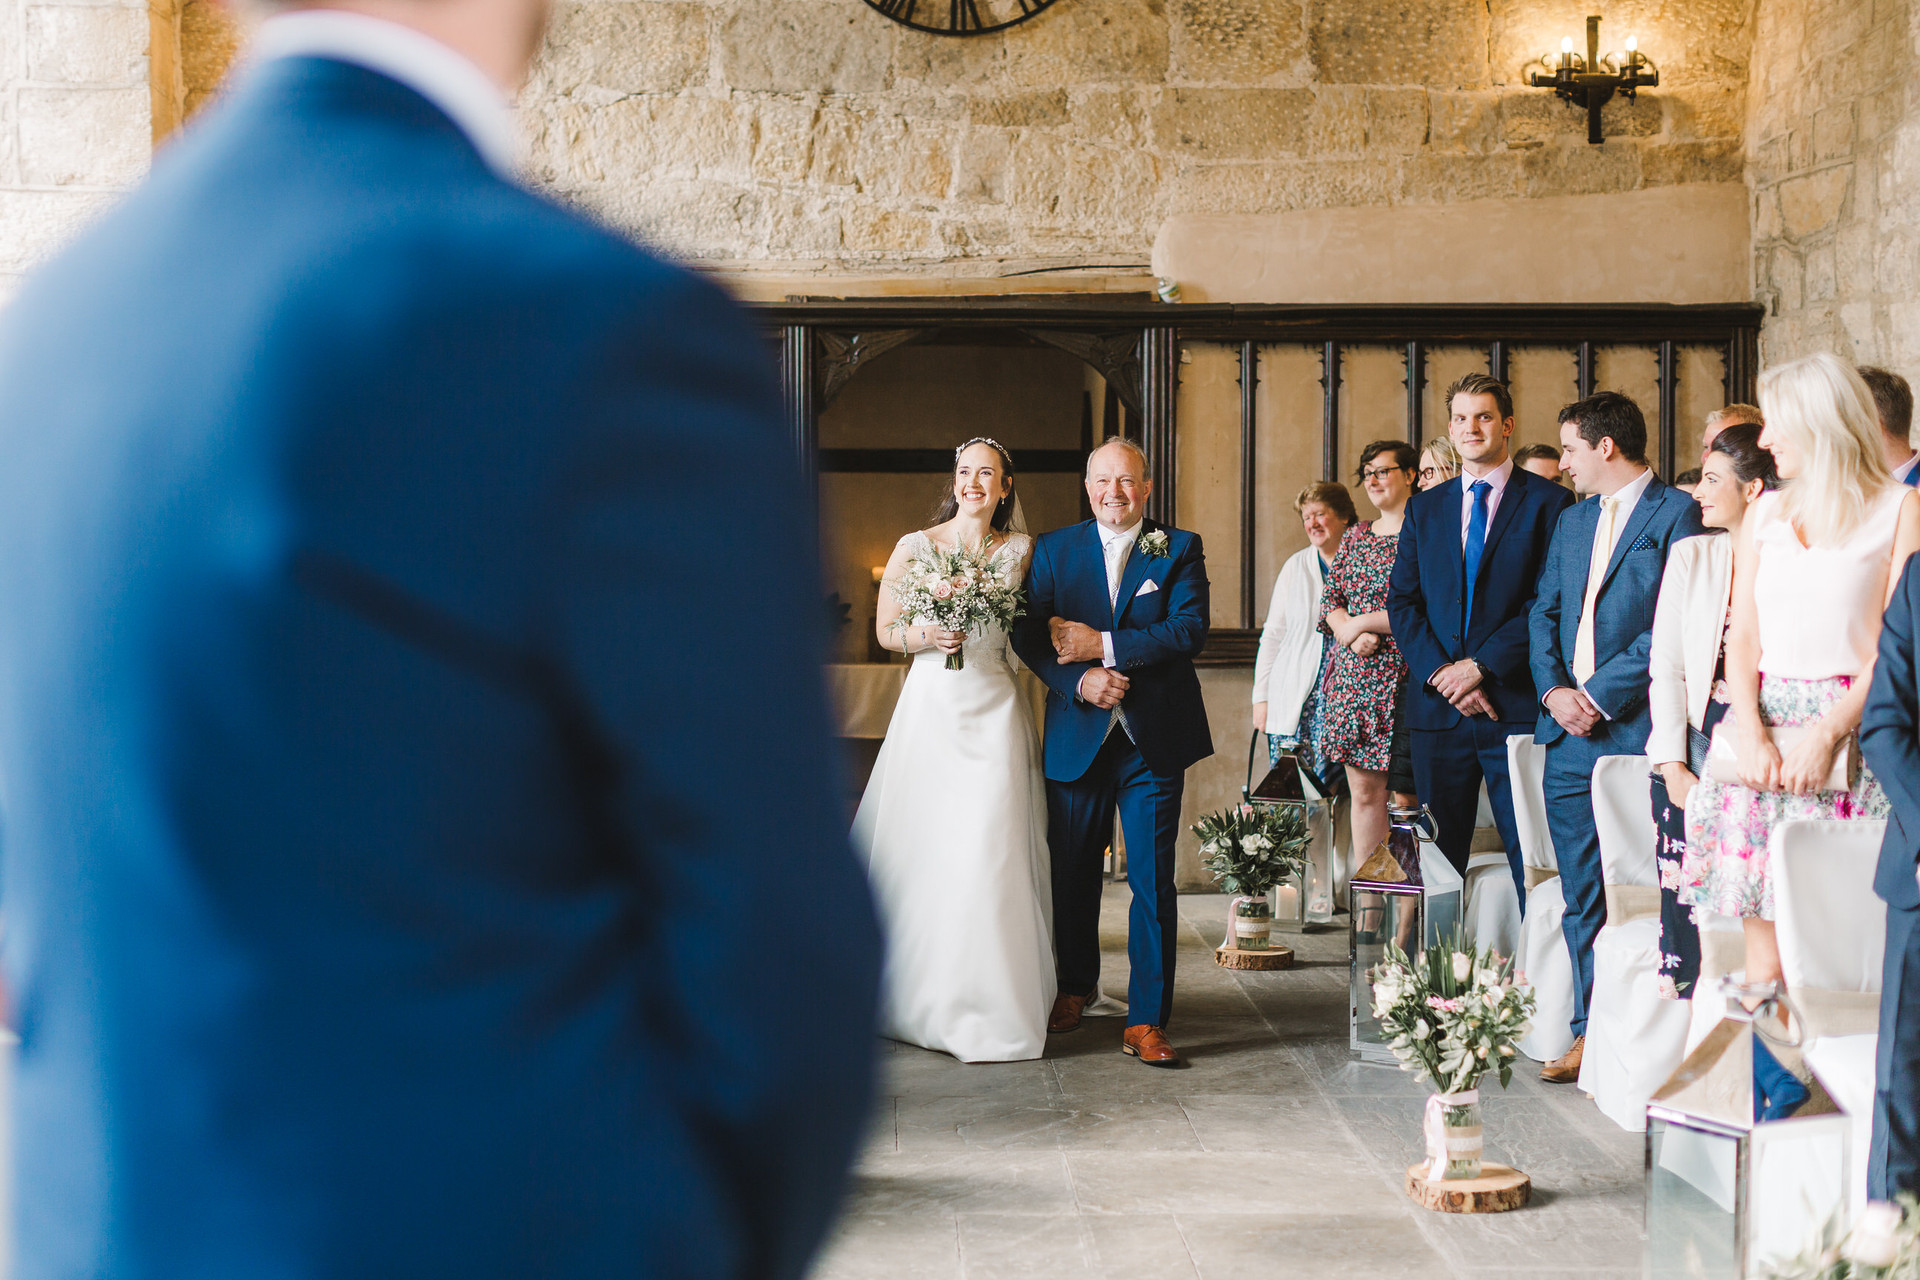 The priest's house wedding photography